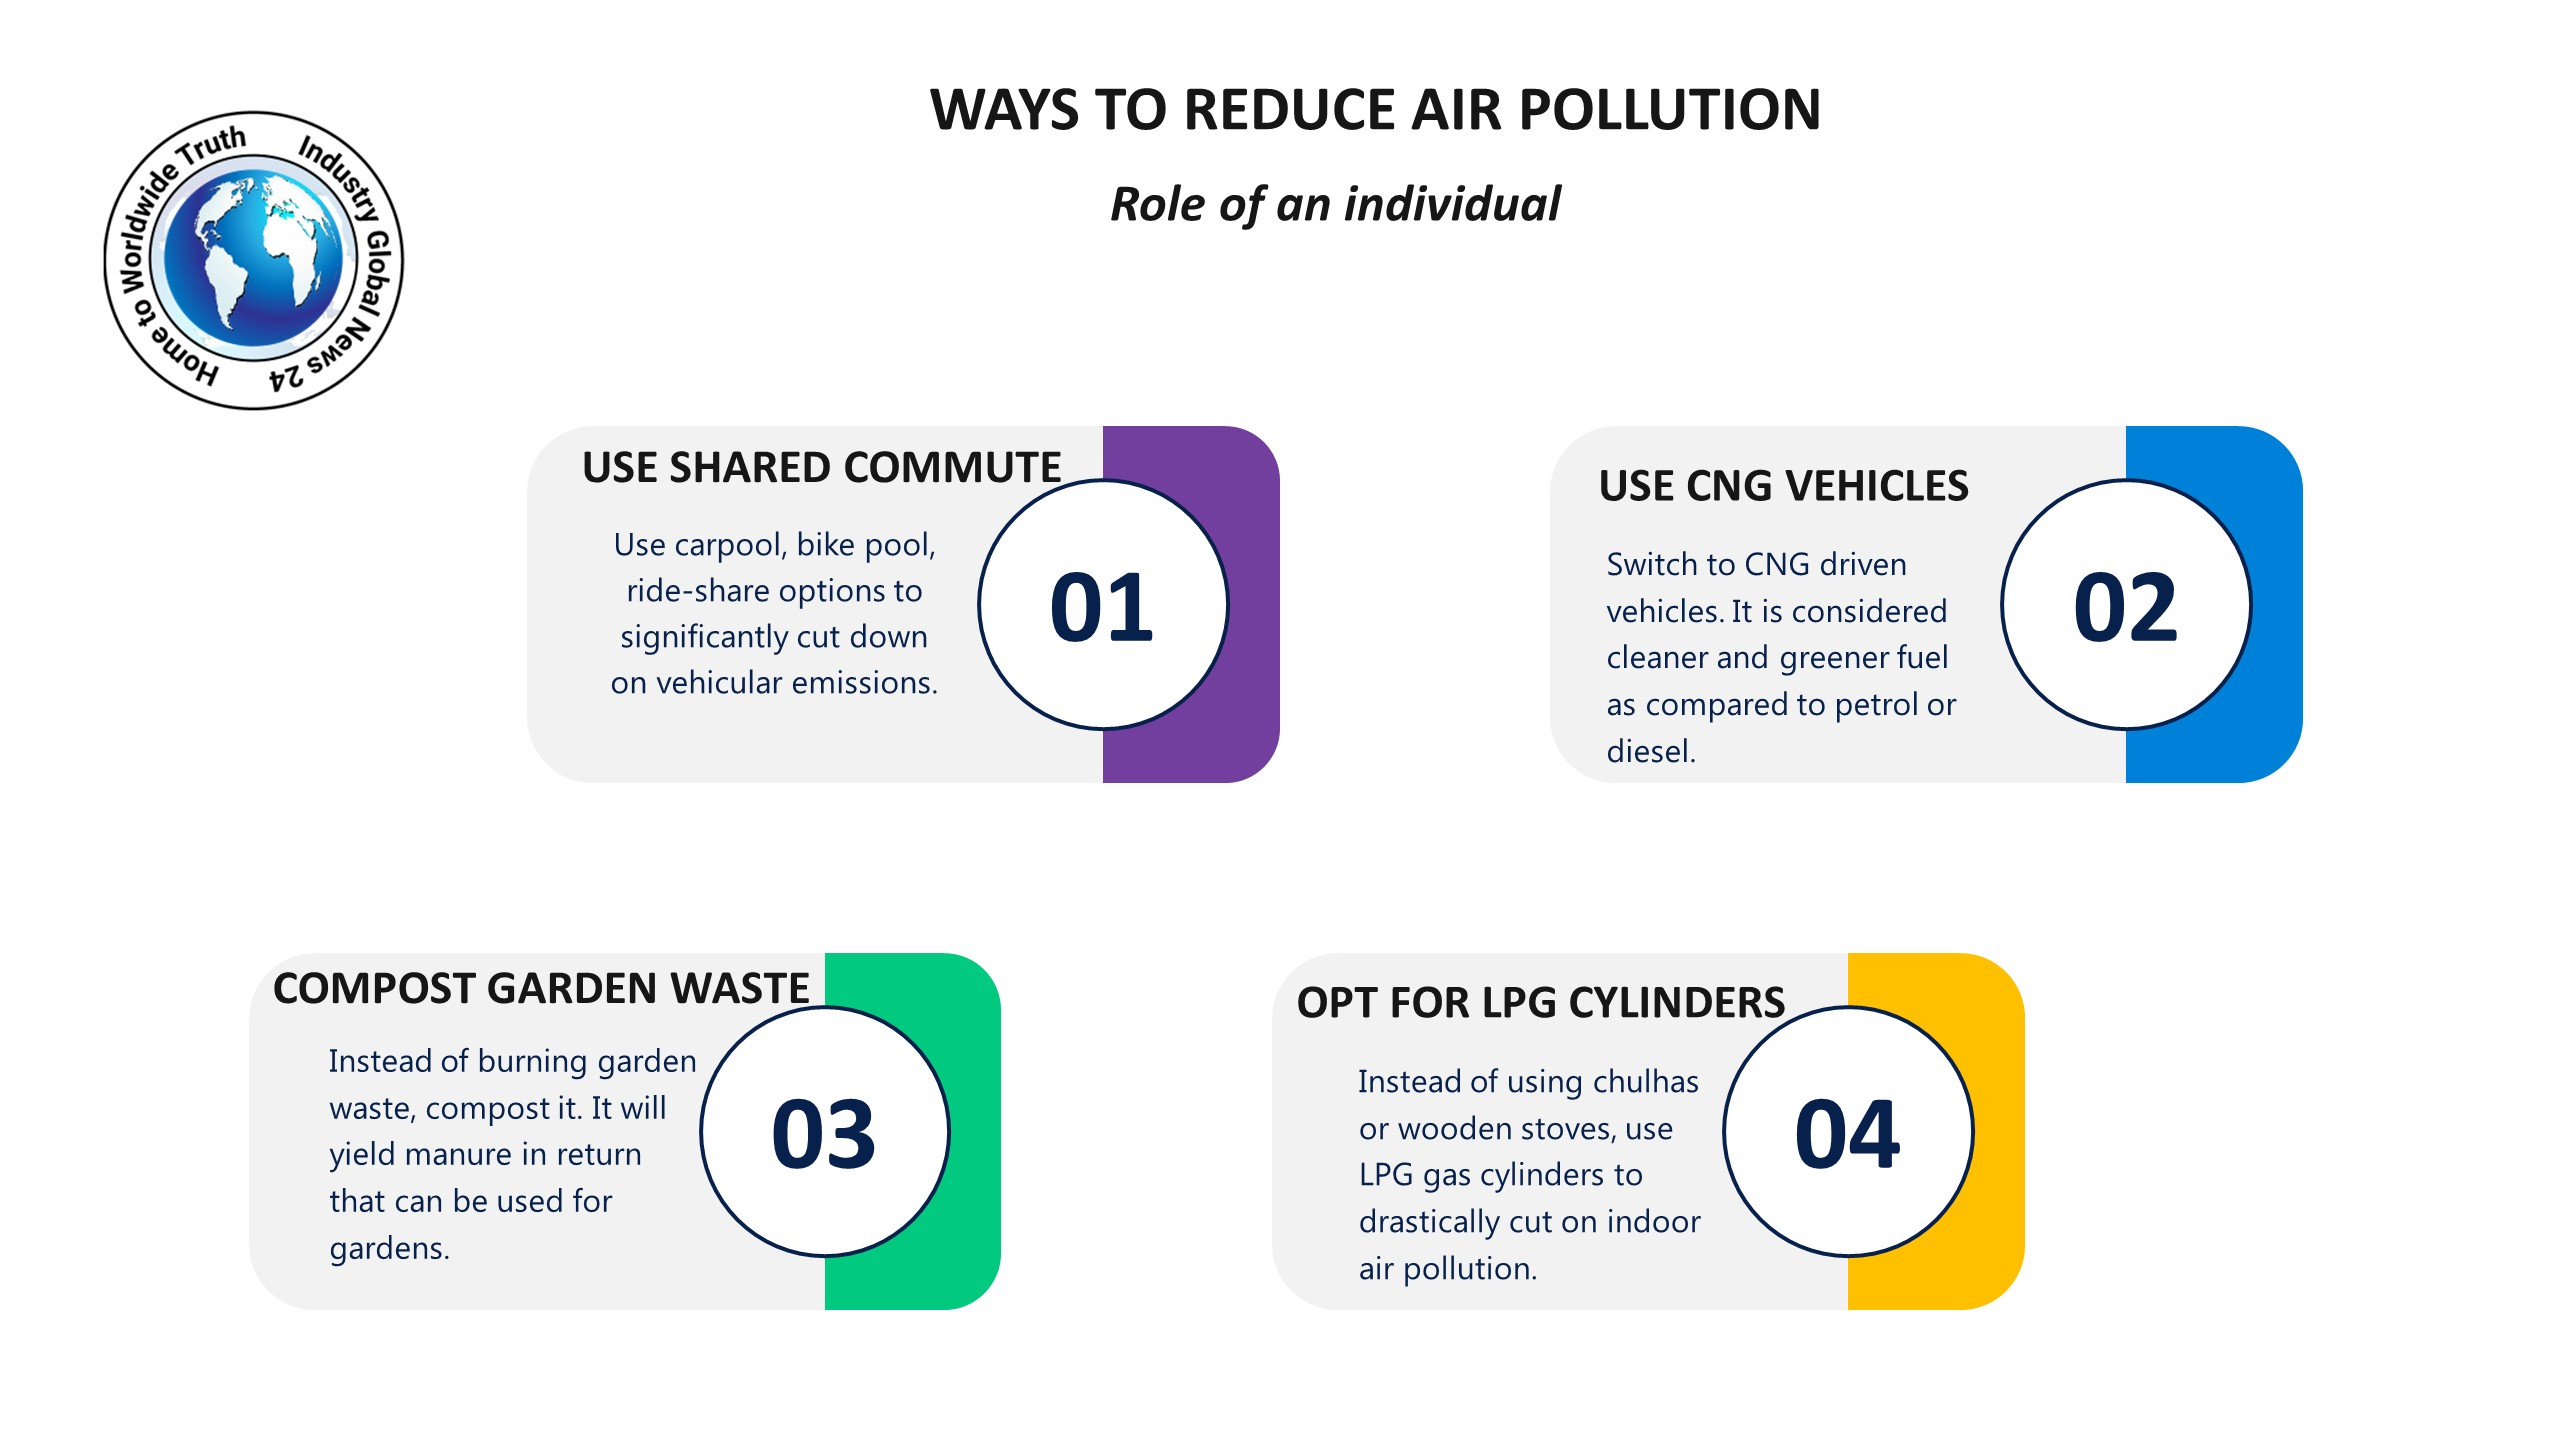 Ways to reduce air pollution – Role of an individual